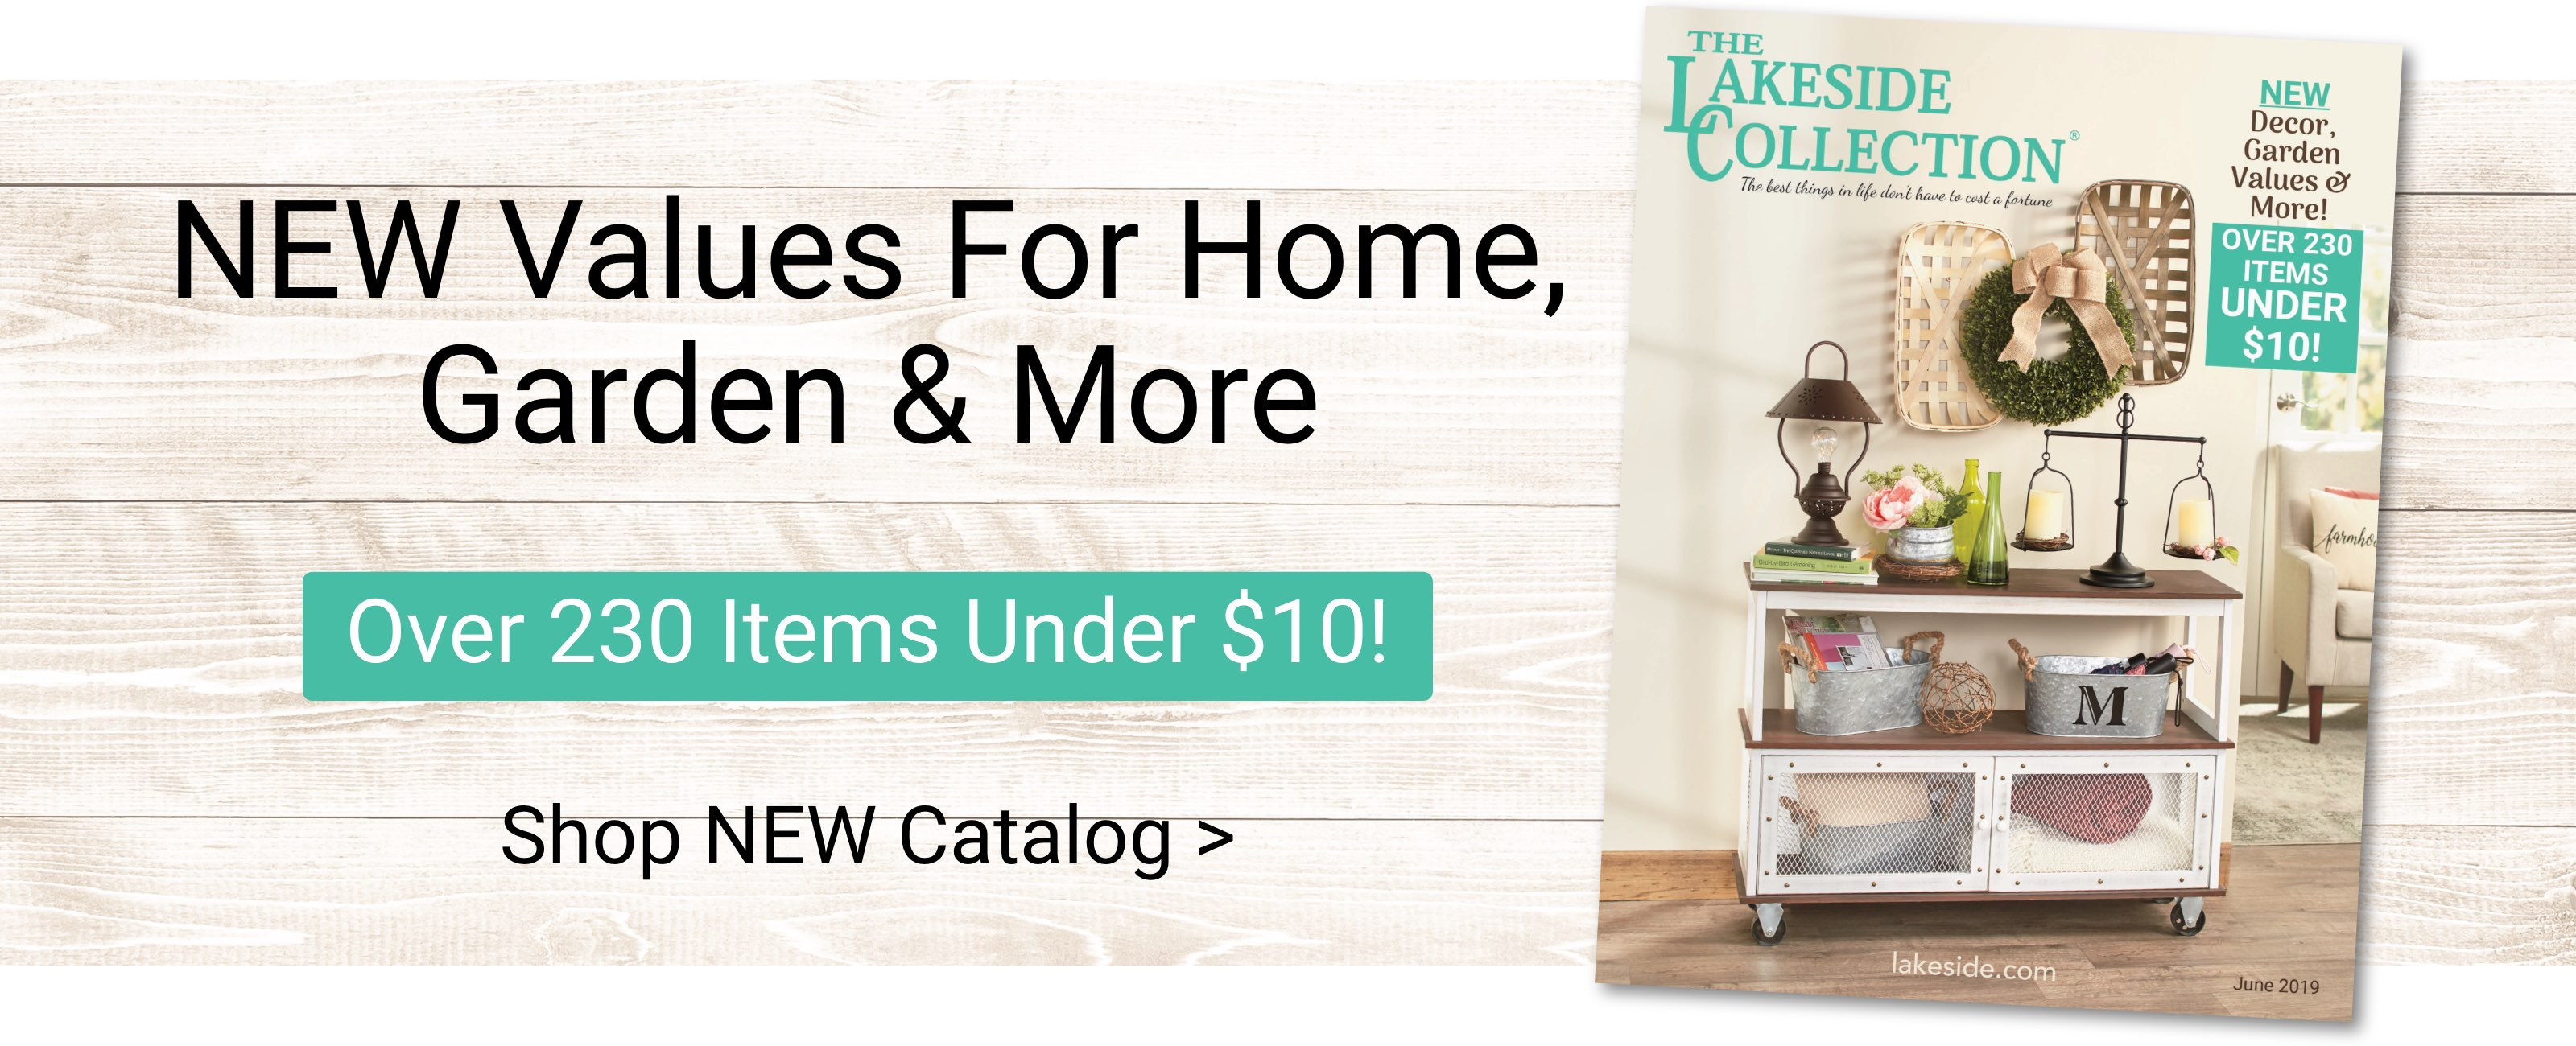 New values for home, garden and more. Over 230 items under $10. Shop now